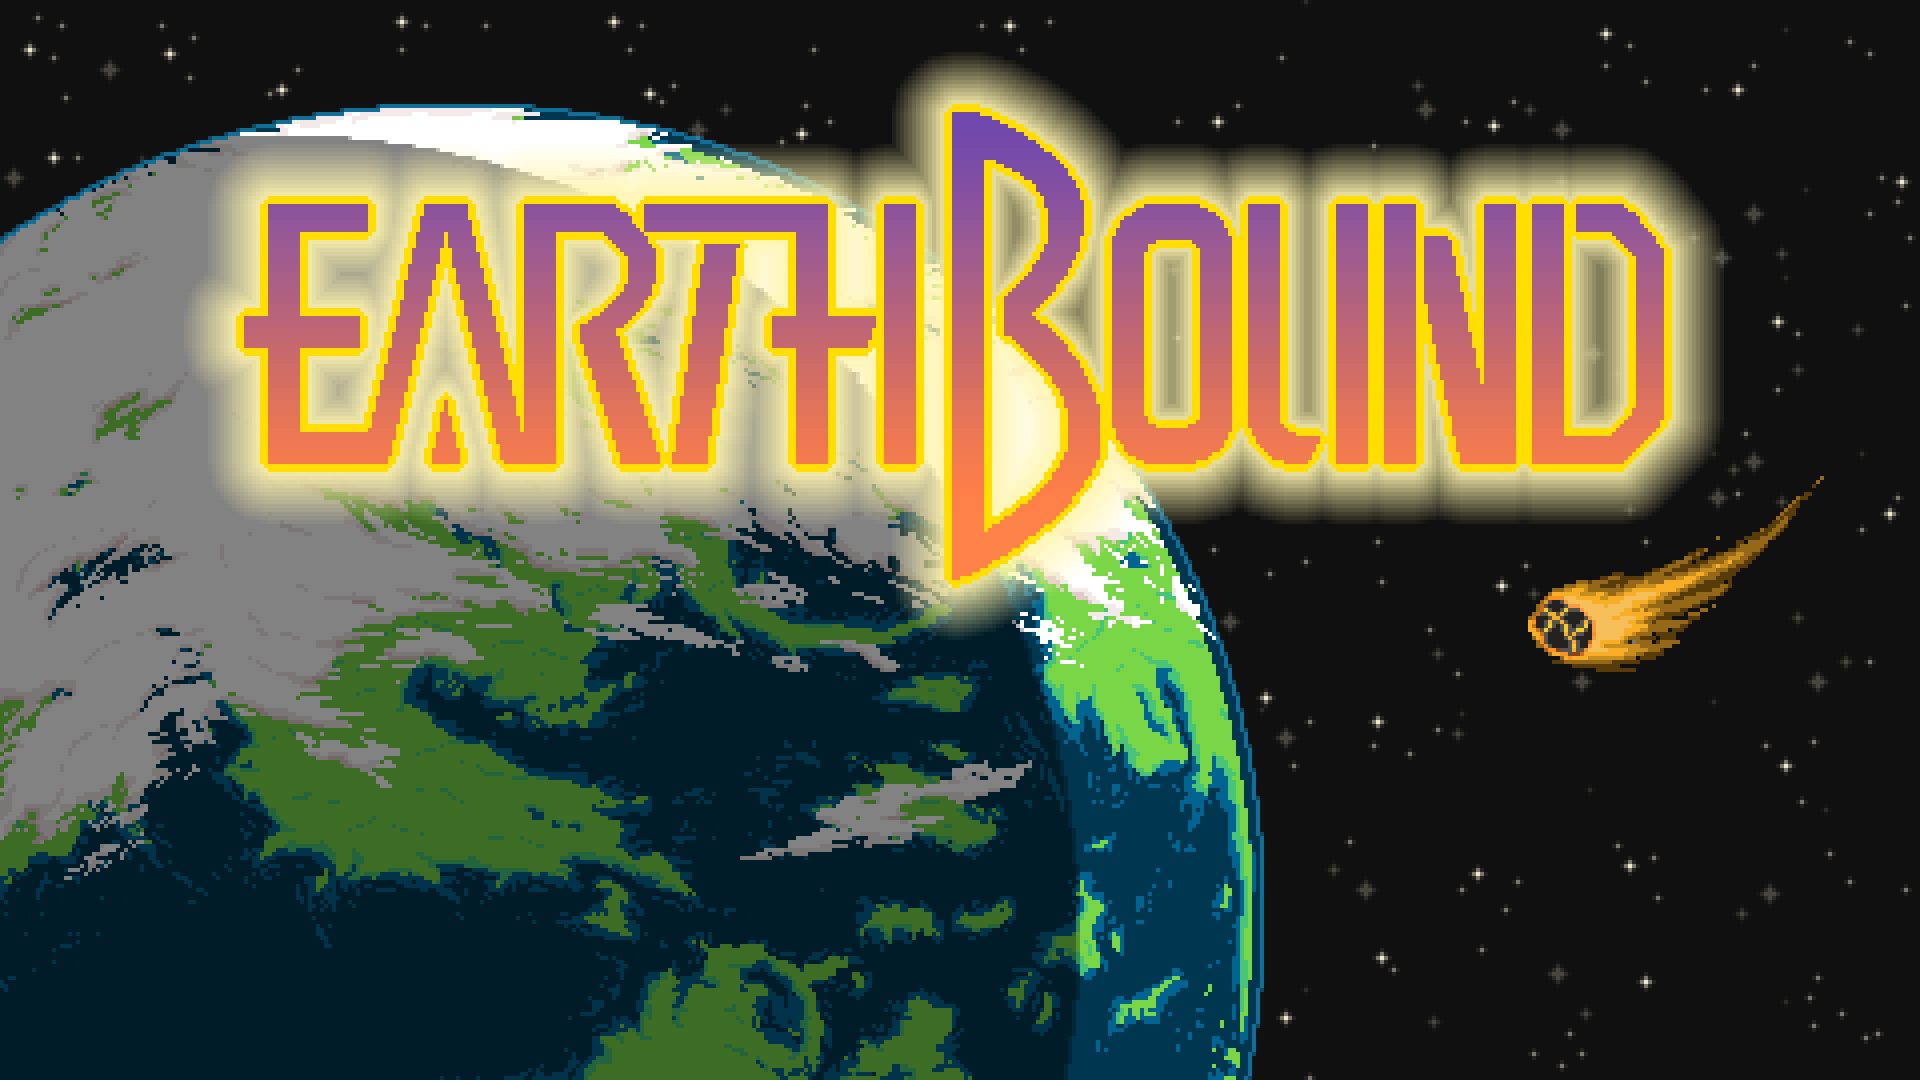 Photo: 4K Ultra HD Earthbound Images, by Scott Vitti